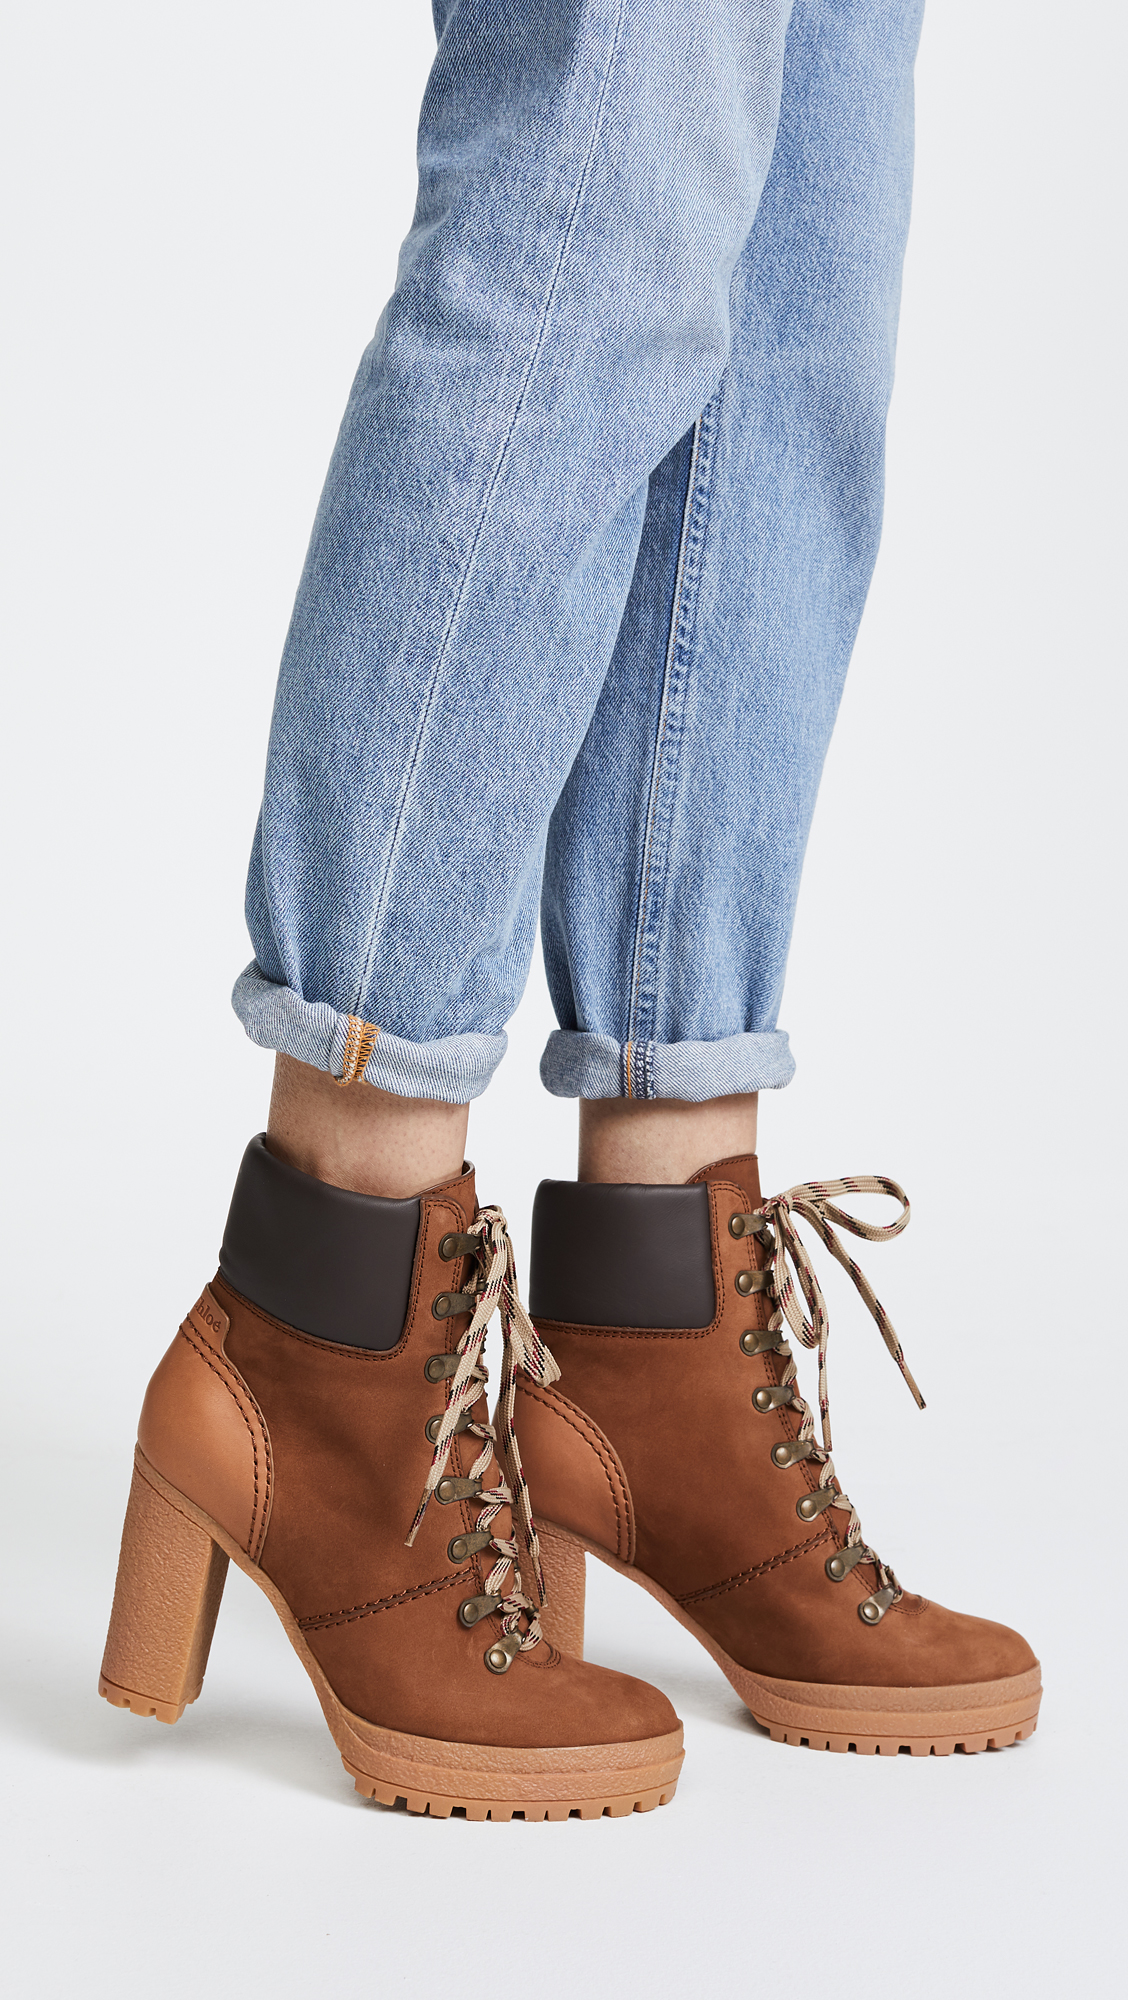 210db6a8b6e0 See by Chloe Eileen Lace Up Boots